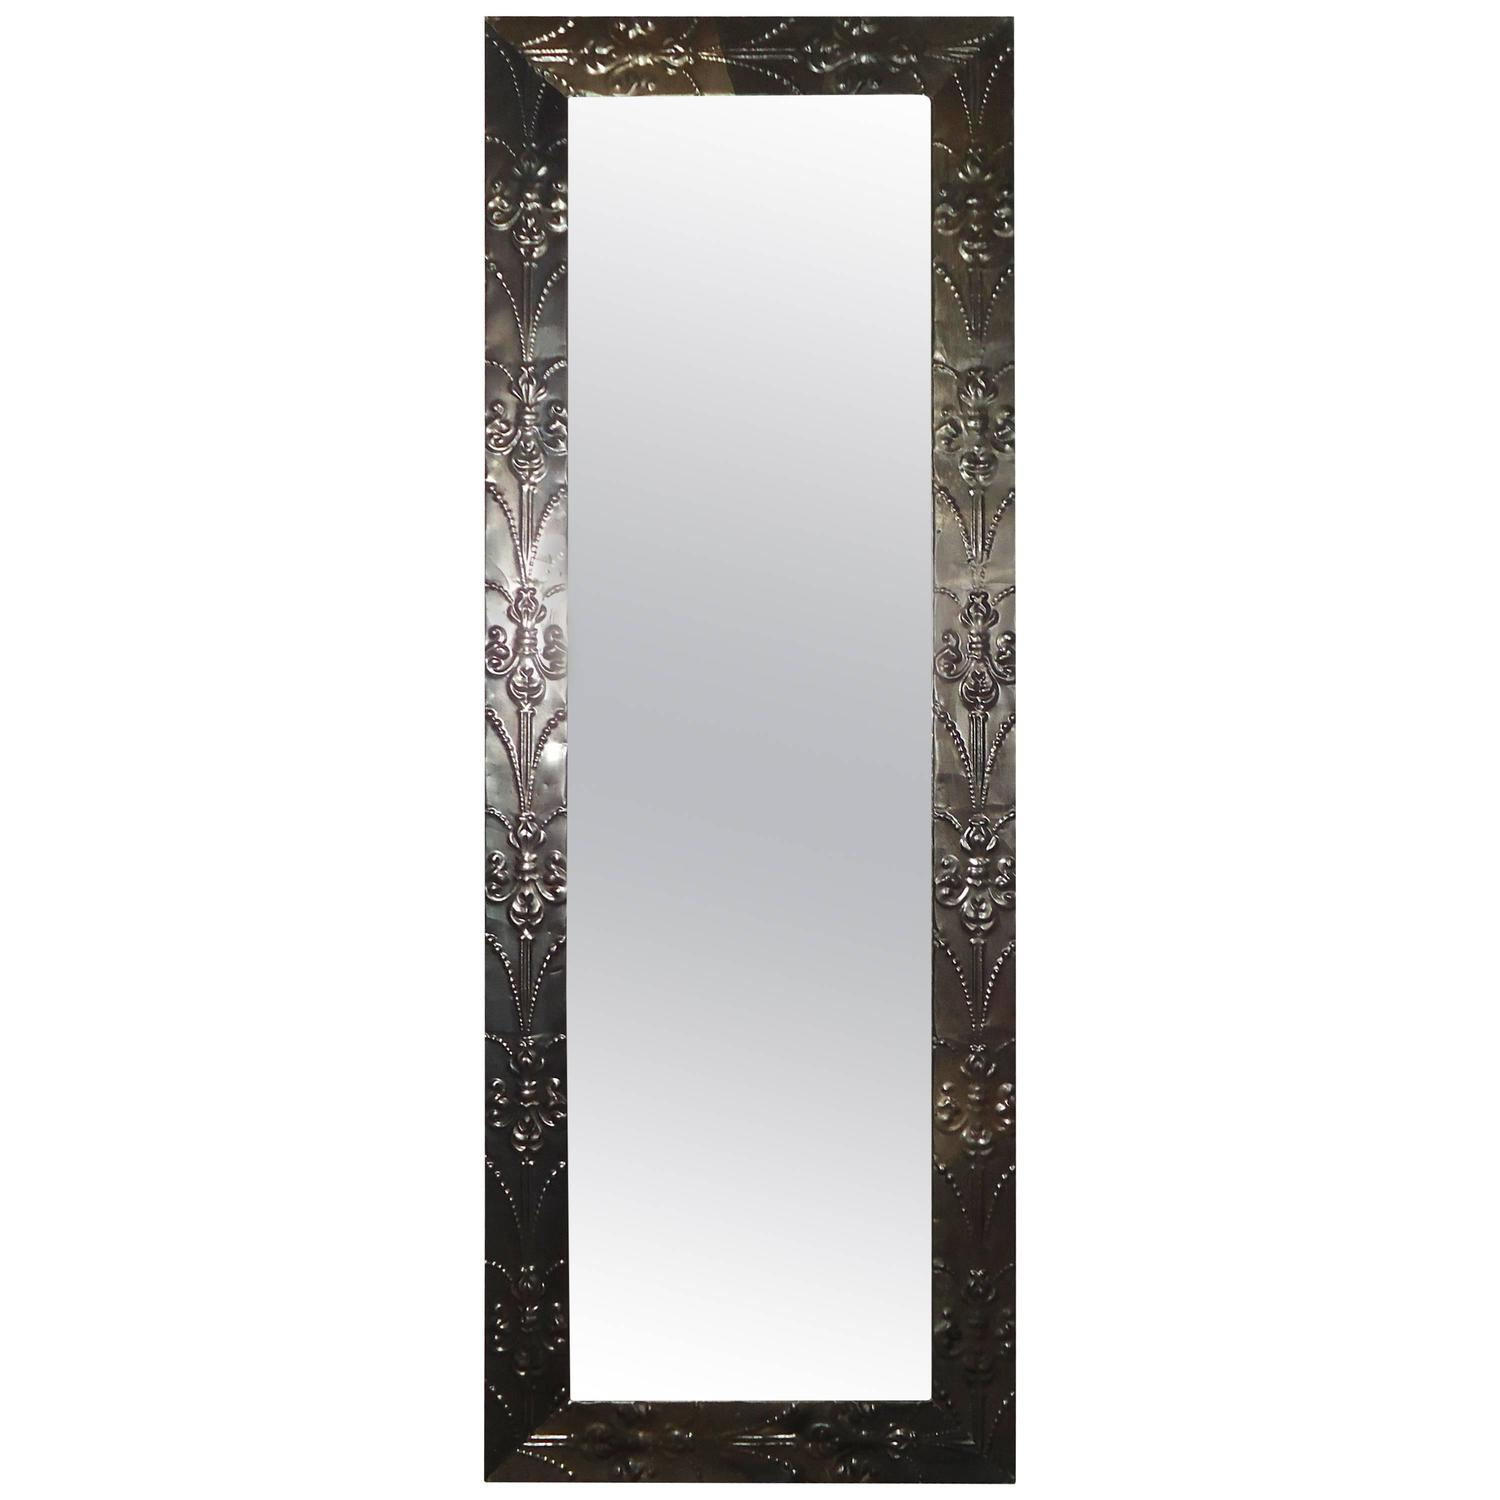 Mid century fluer de lis metal framed mirror at 1stdibs for Metal frame mirror